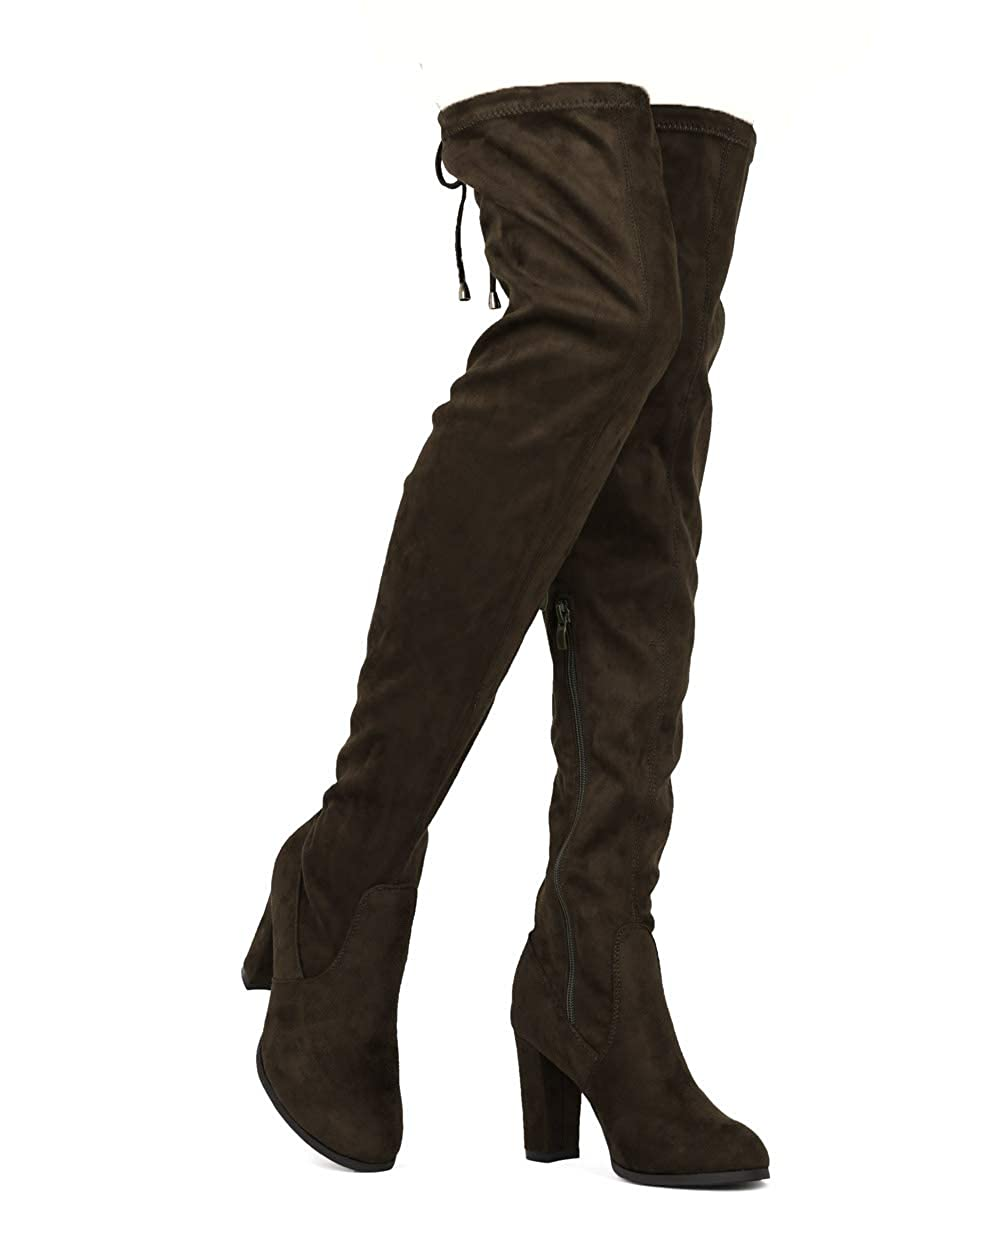 ShoBeautiful Womens Over The Knee Boots Stretchy Thigh High